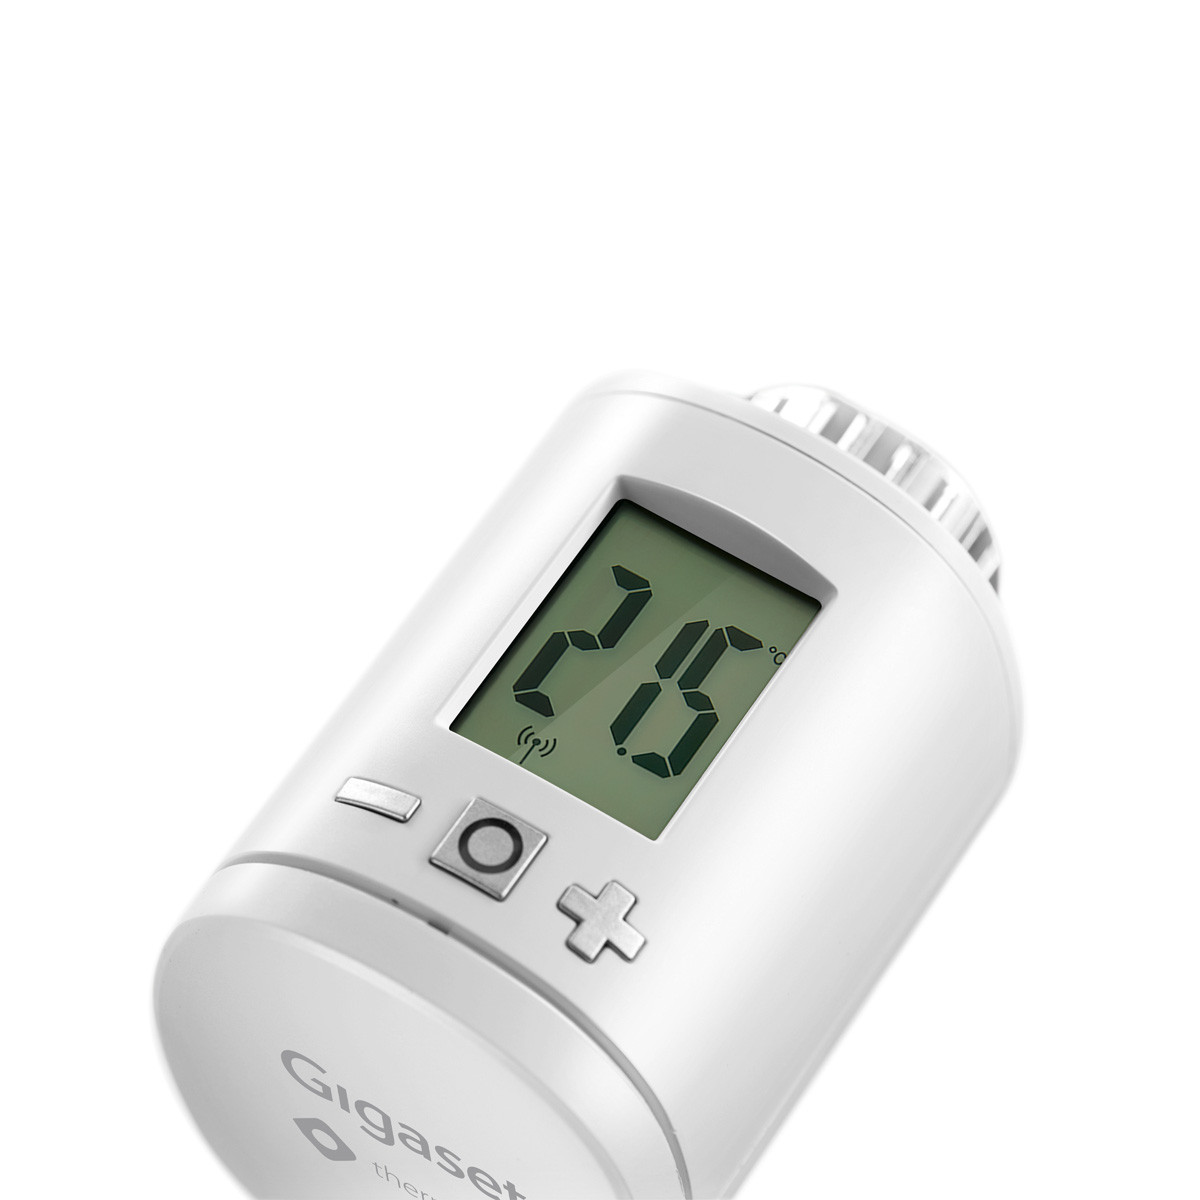 Gigaset thermostat 3er pack